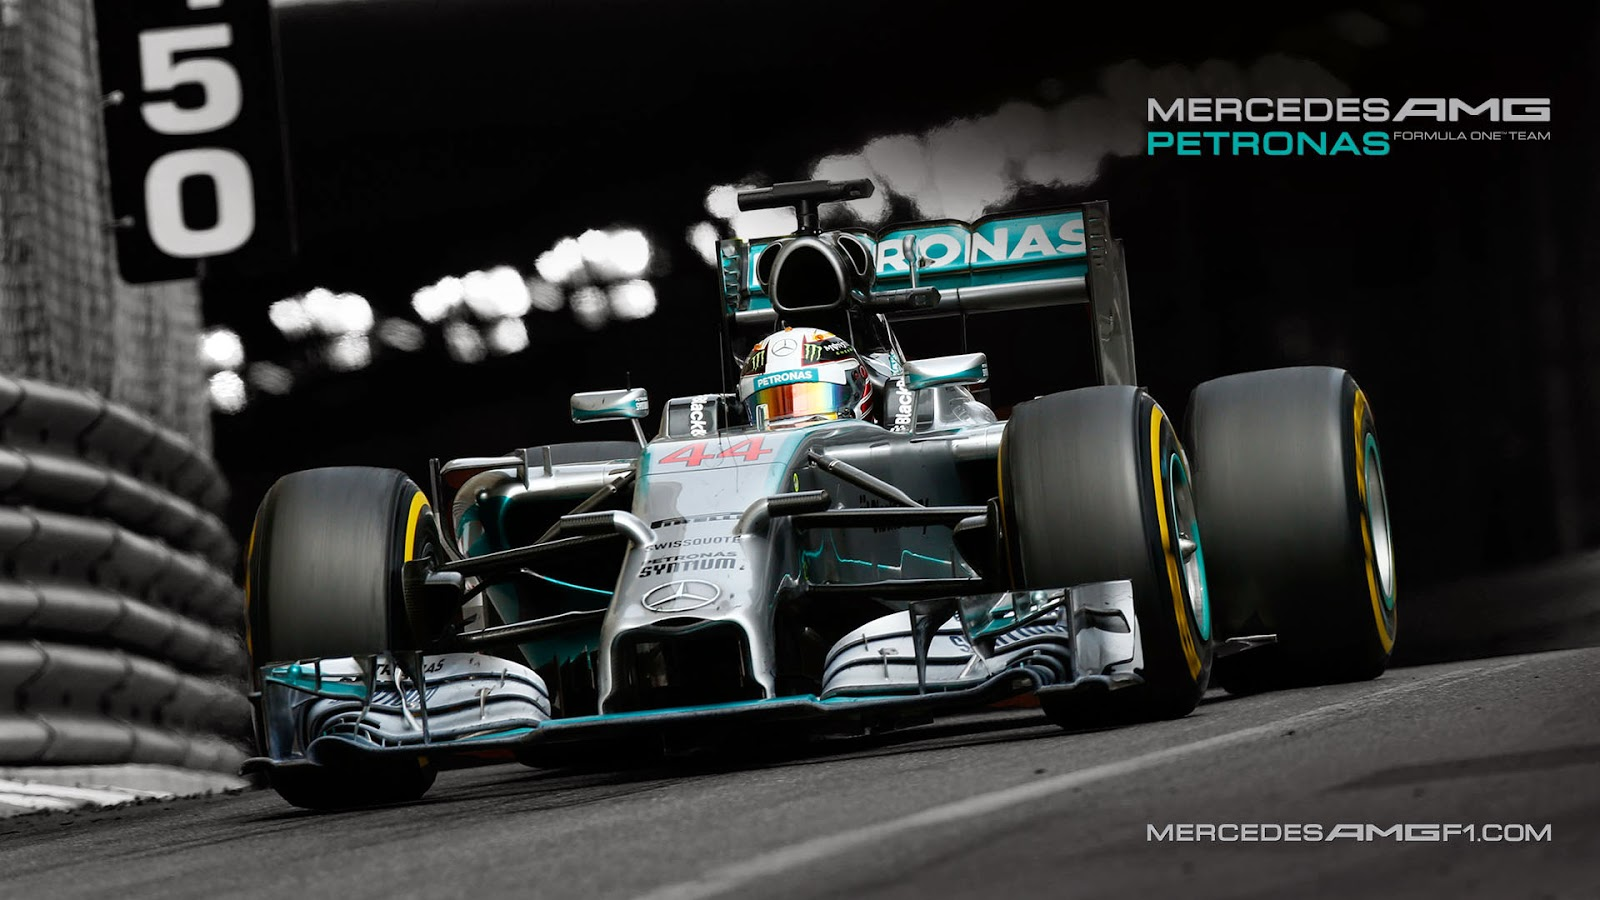 Formula 1 Wallpaper Full HDQ Formula 1 Pictures and 1600x900